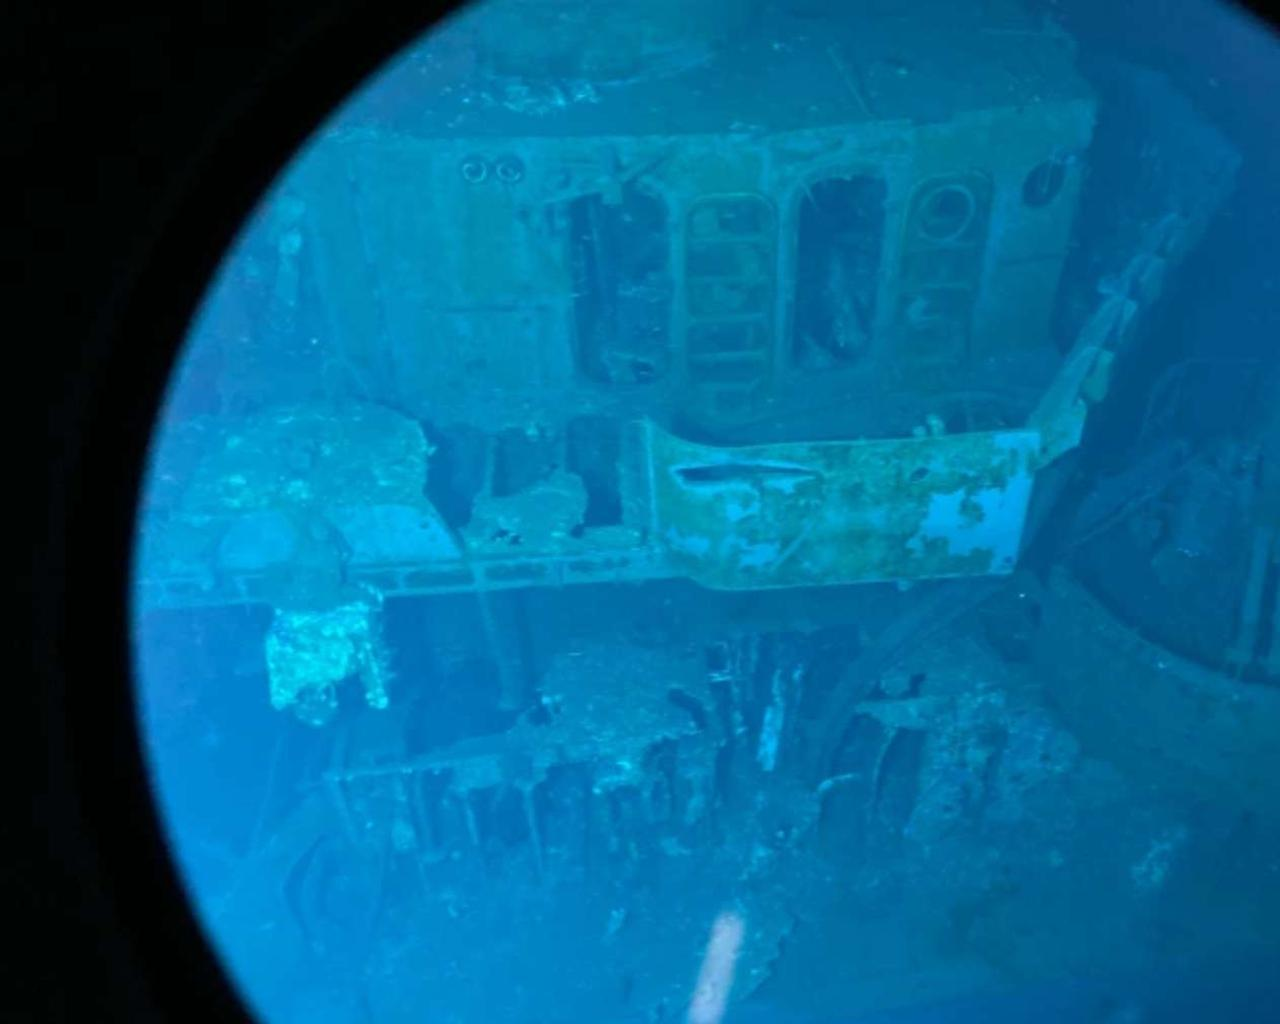 They found at 6,500 meters depth the remains of a U.S. ship sunk in the Philippines during World War II.